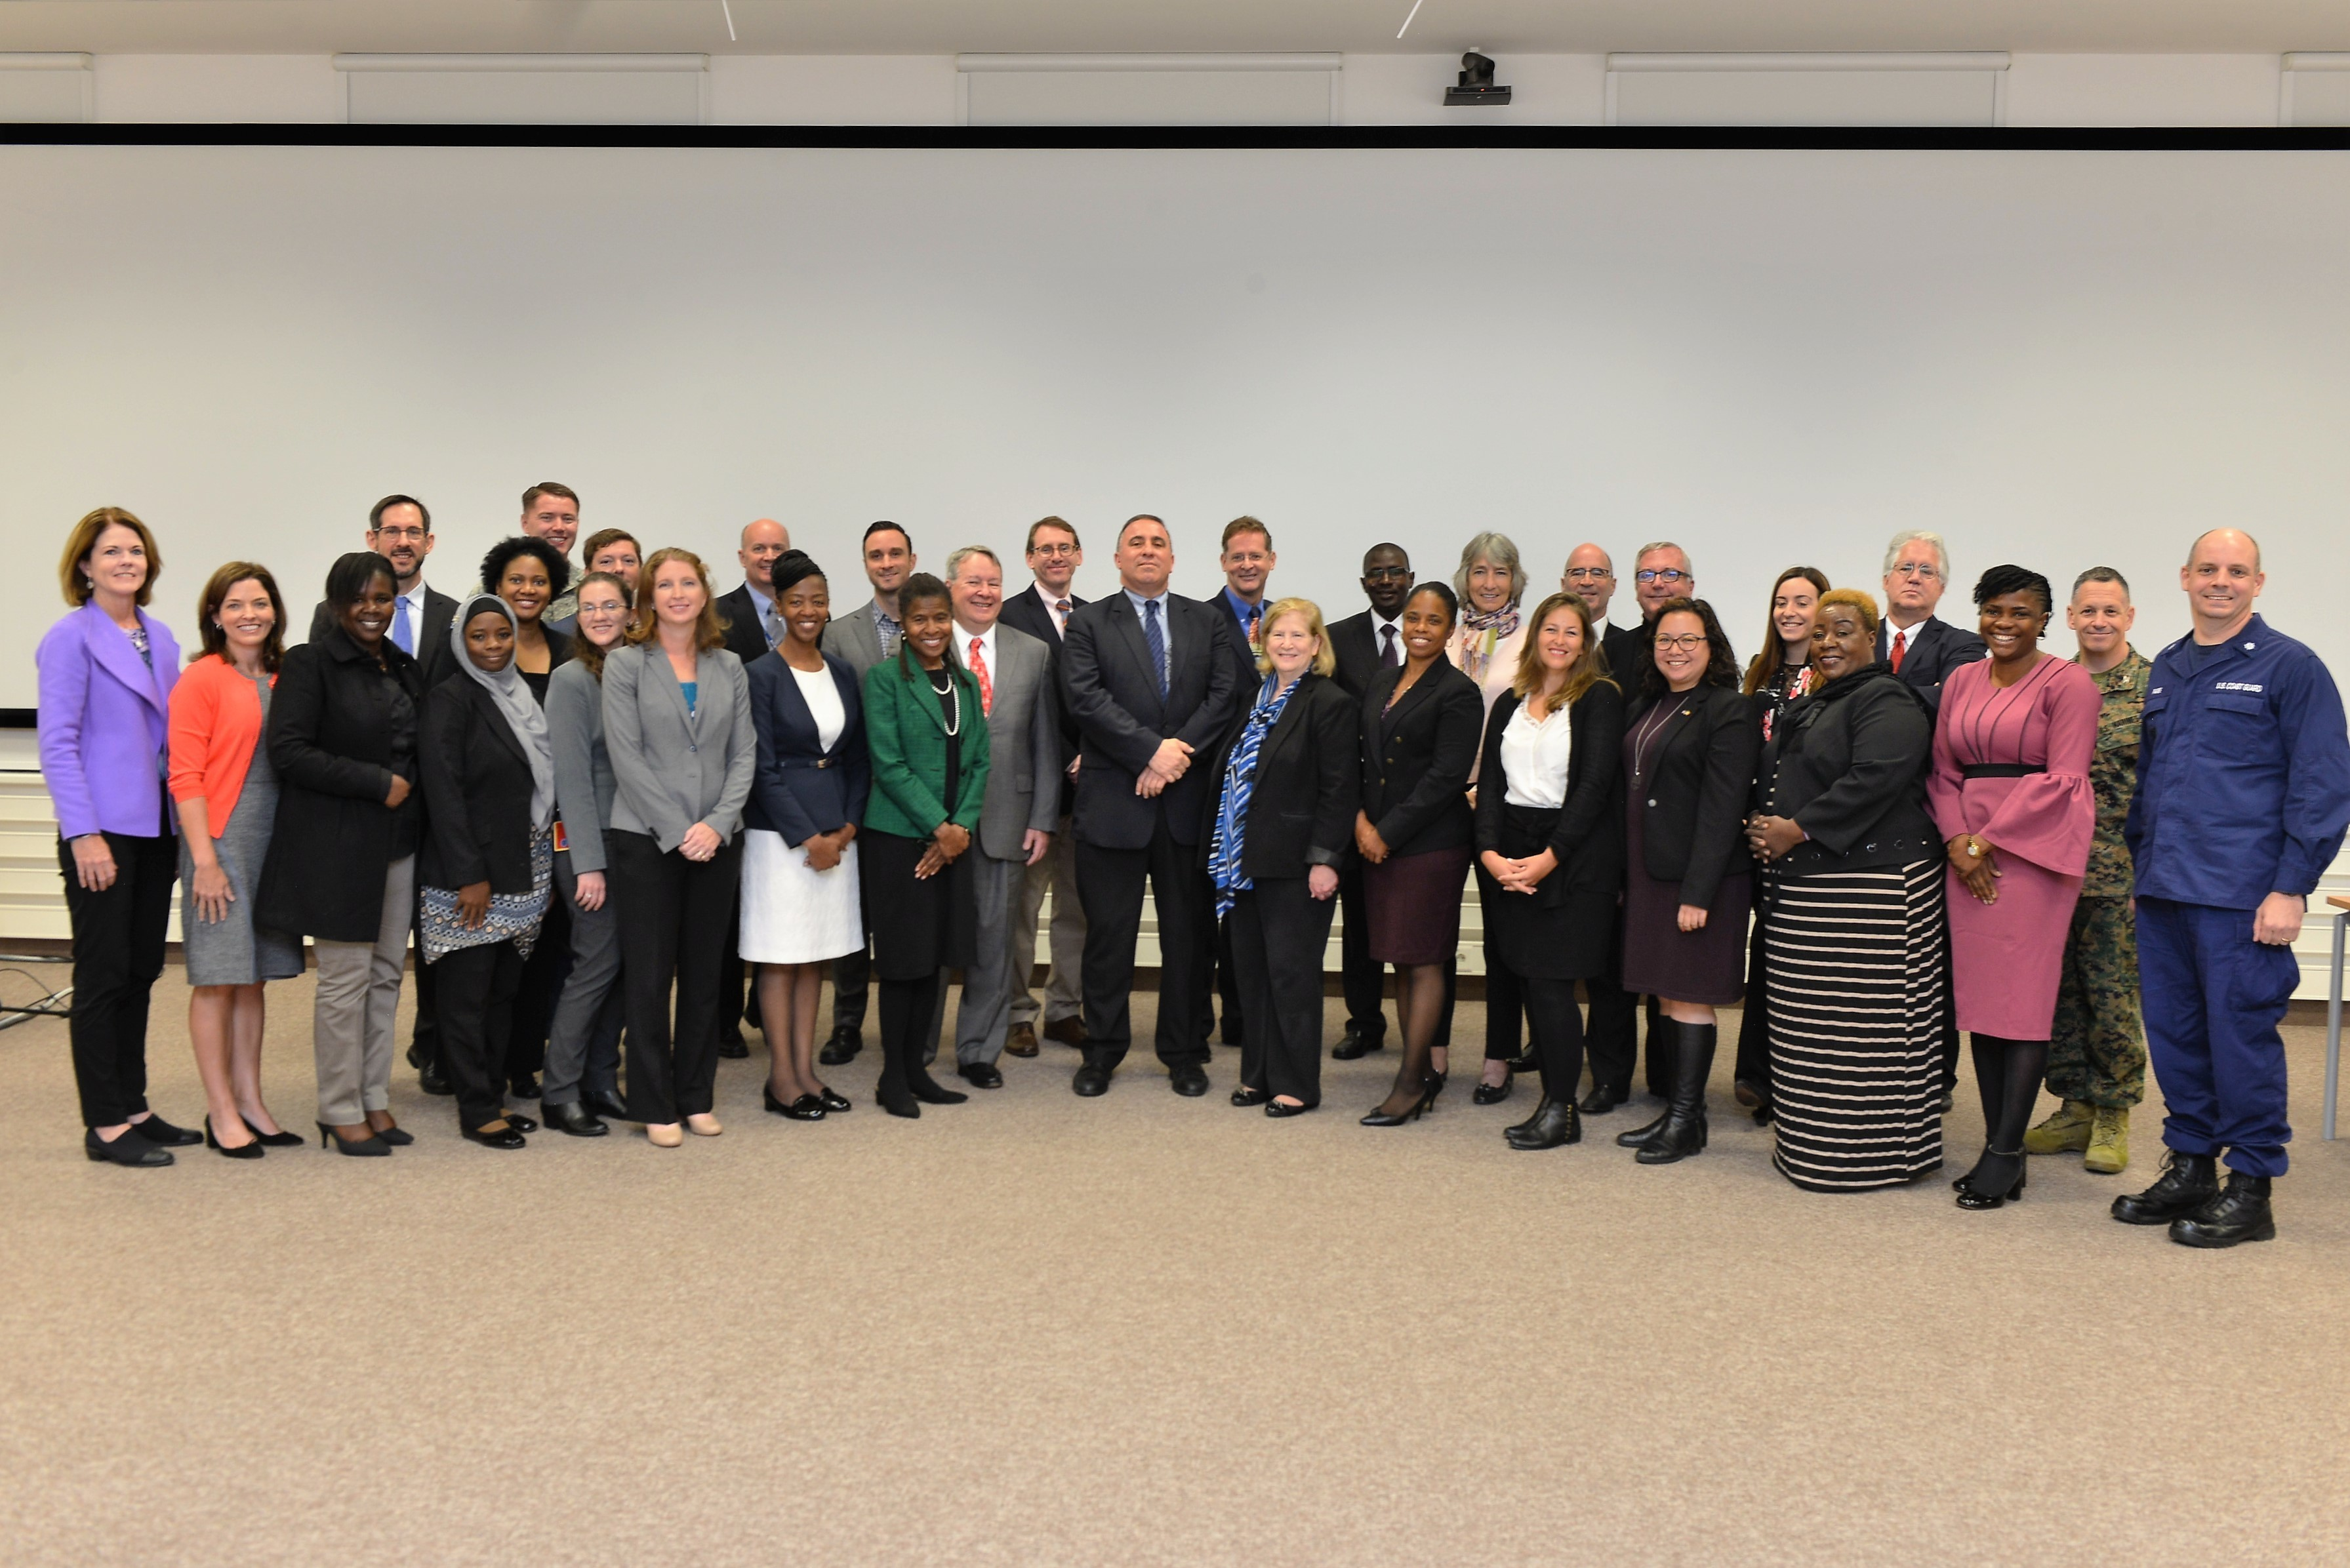 STUTTGART, Germany— U.S. Department of Justice & U.S. Africa Command (USAFRICOM) hosted the first DOJ Africa Symposium, Oct. 29 to Nov. 2, 2018 at the Kelly Special Events Center, U.S. Army Garrison Stuttgart. 